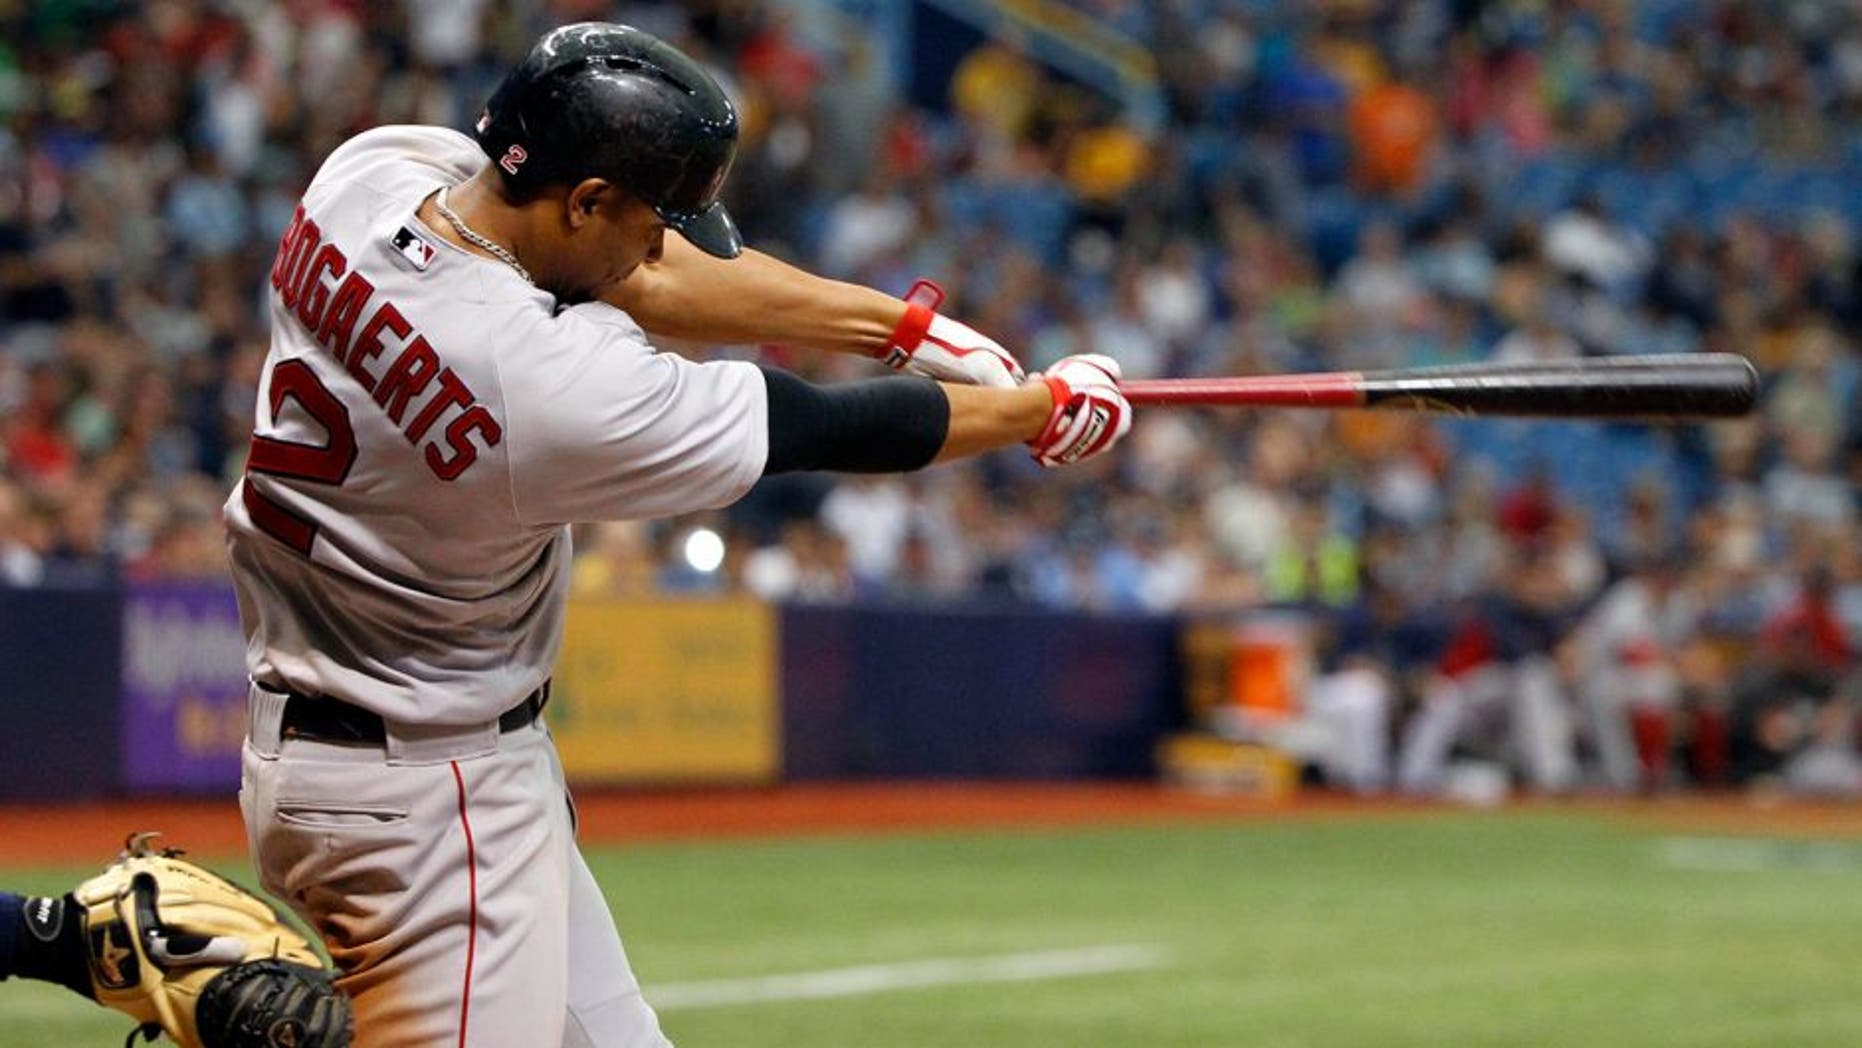 May 25, 2014; St. Petersburg, FL, USA; Boston Red Sox shortstop Xander Bogaerts (2) hits a 2-RBI single during the ninth inning against the Tampa Bay Rays at Tropicana Field. Tampa Bay Rays defeated the Boston Red Sox 8-5. Mandatory Credit: Kim Klement-USA TODAY Sports